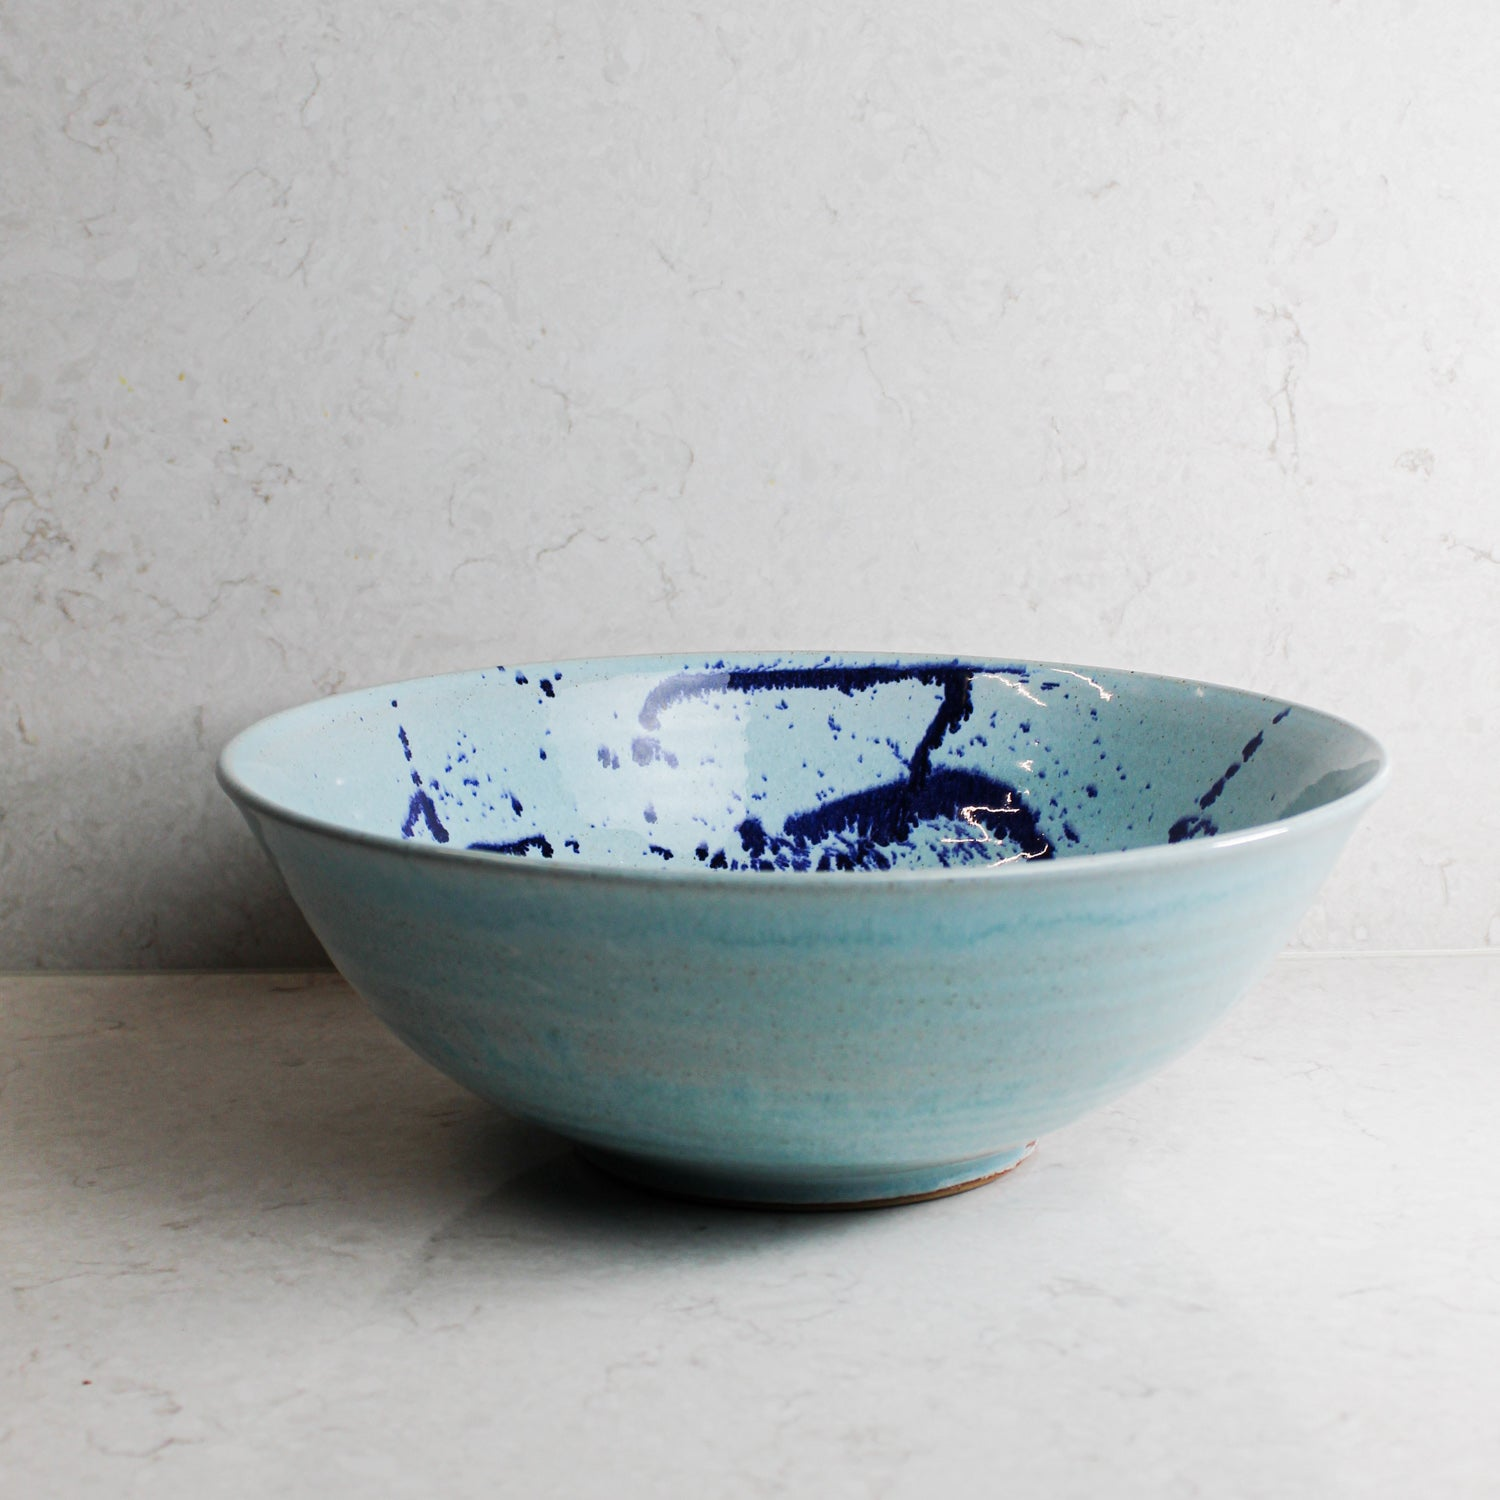 Side view of large baby blue ceramic salad bowl with darker blue splatters